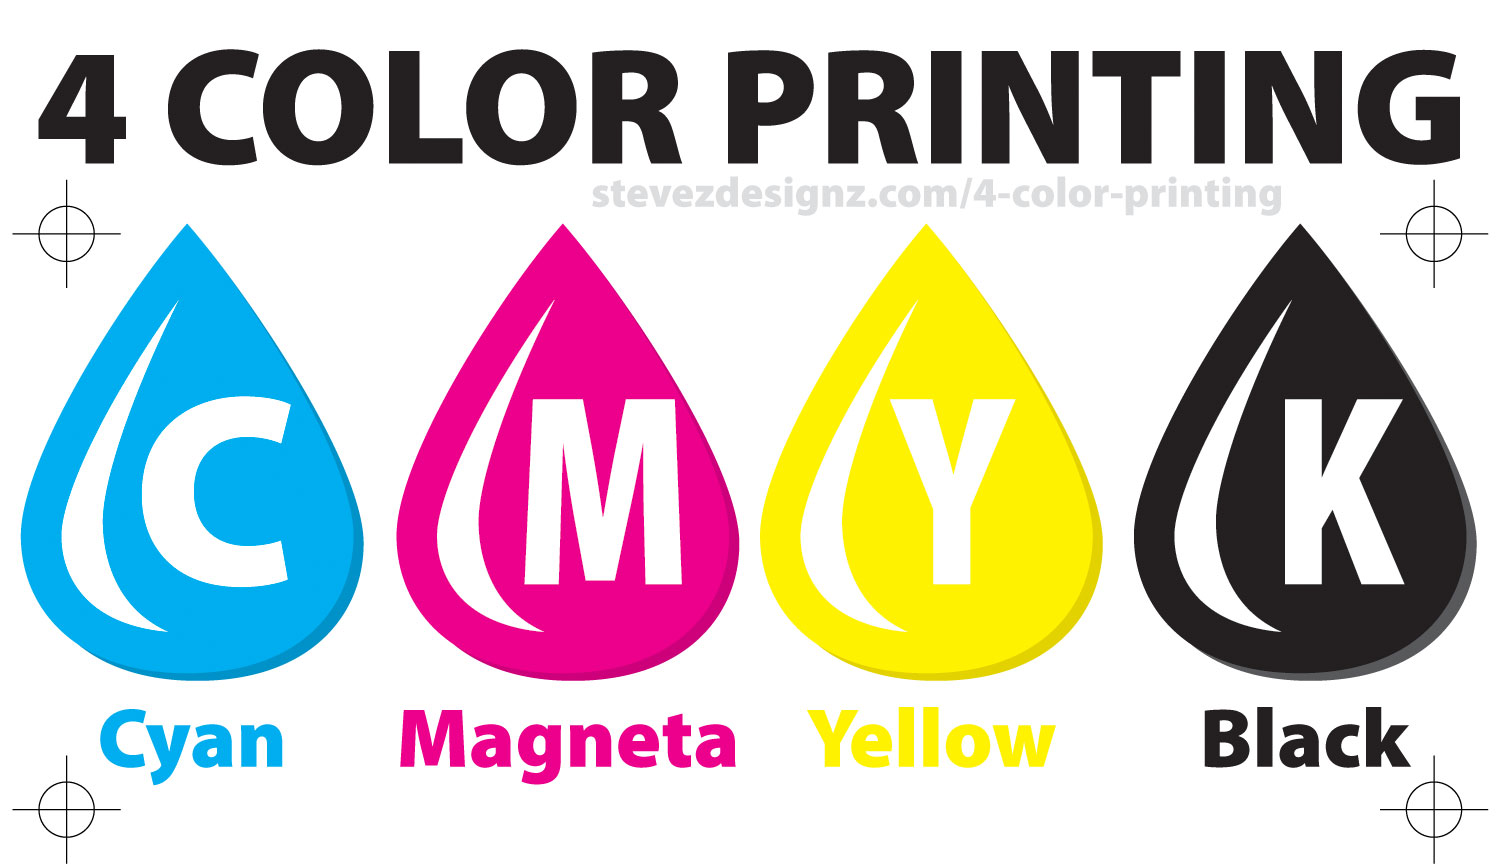 4-Color Printing - The Method that printing presses print printed material. #CMYK #4ColorPrinting